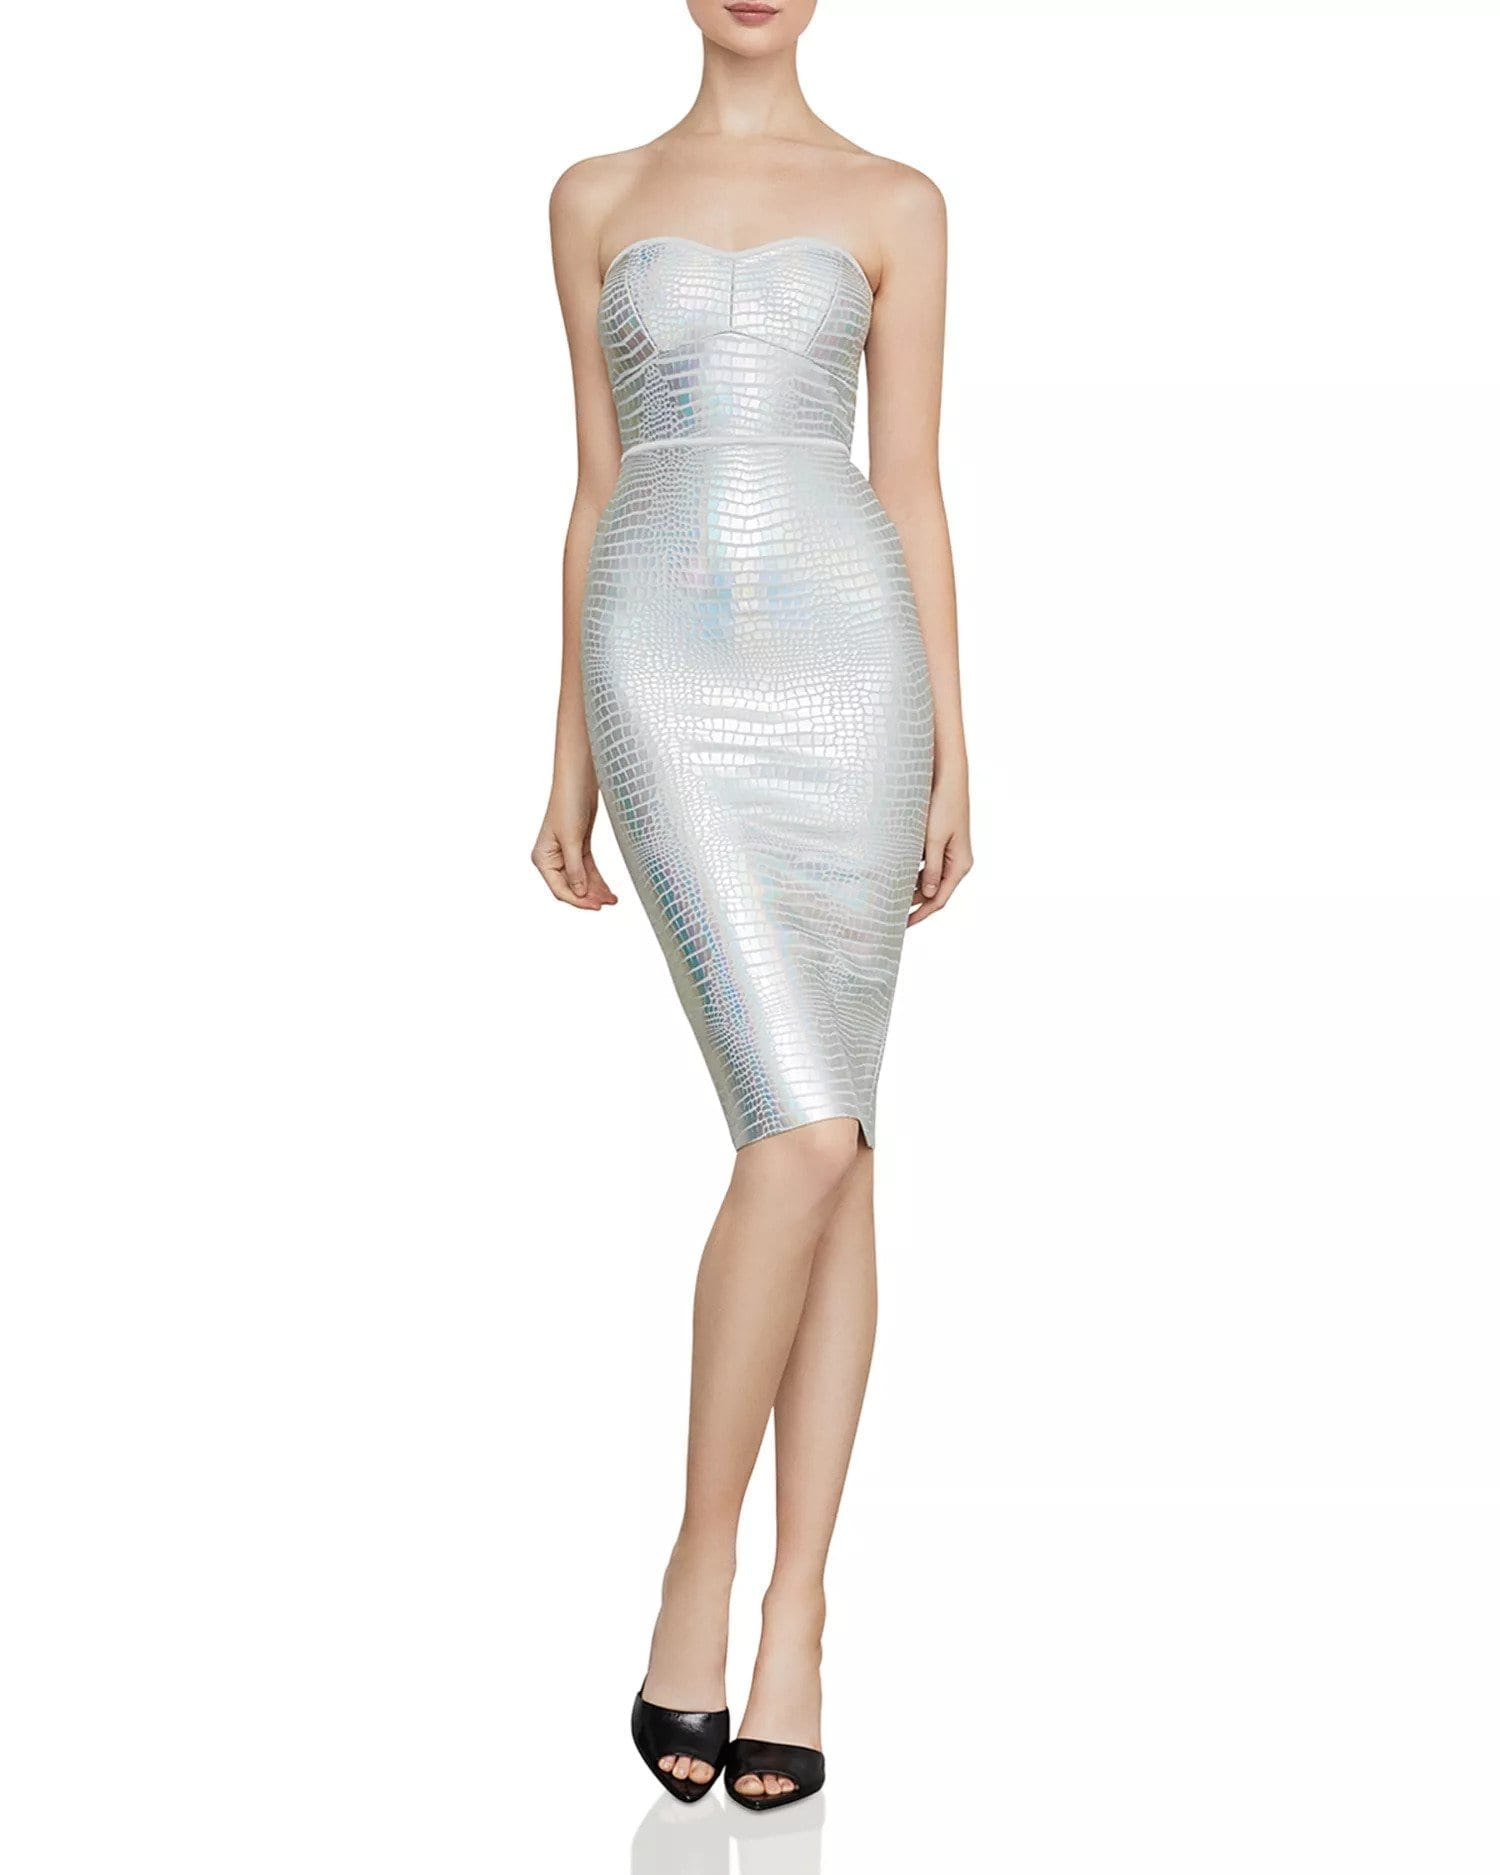 BCBGMAXAZRIA Faux-Croc Metallic Strapless Silver Dress